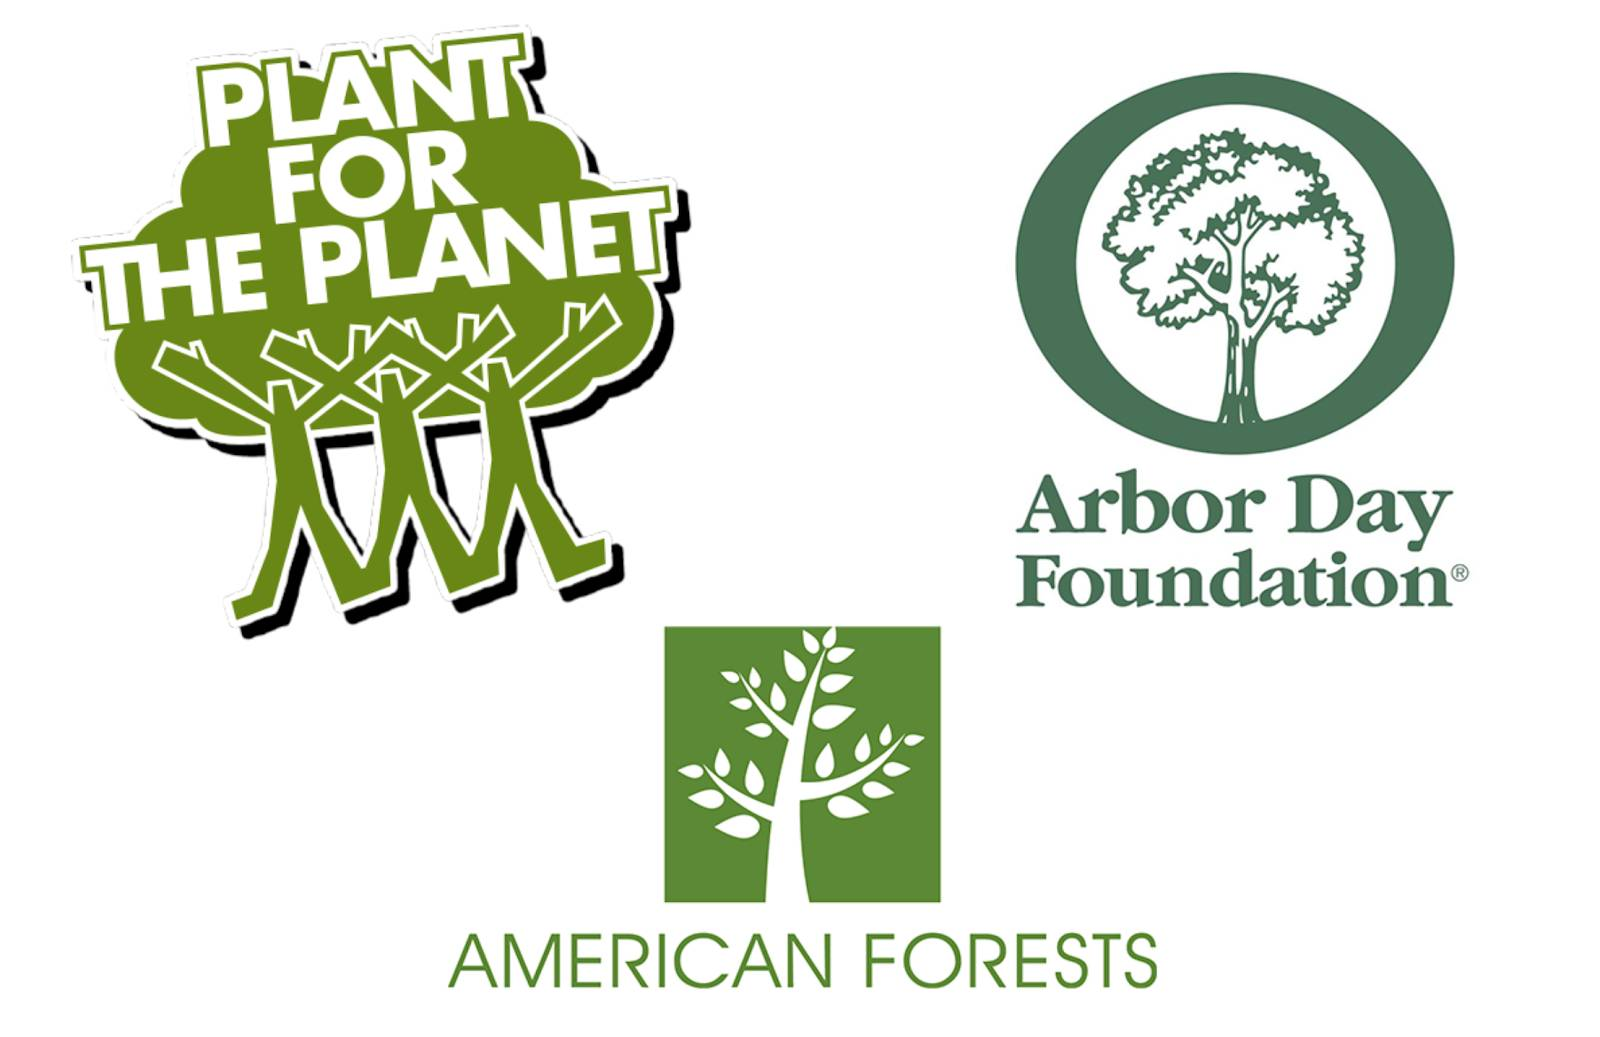 Logos for Plant for the Planet, American Forests, and the Arbor Day Foundation.